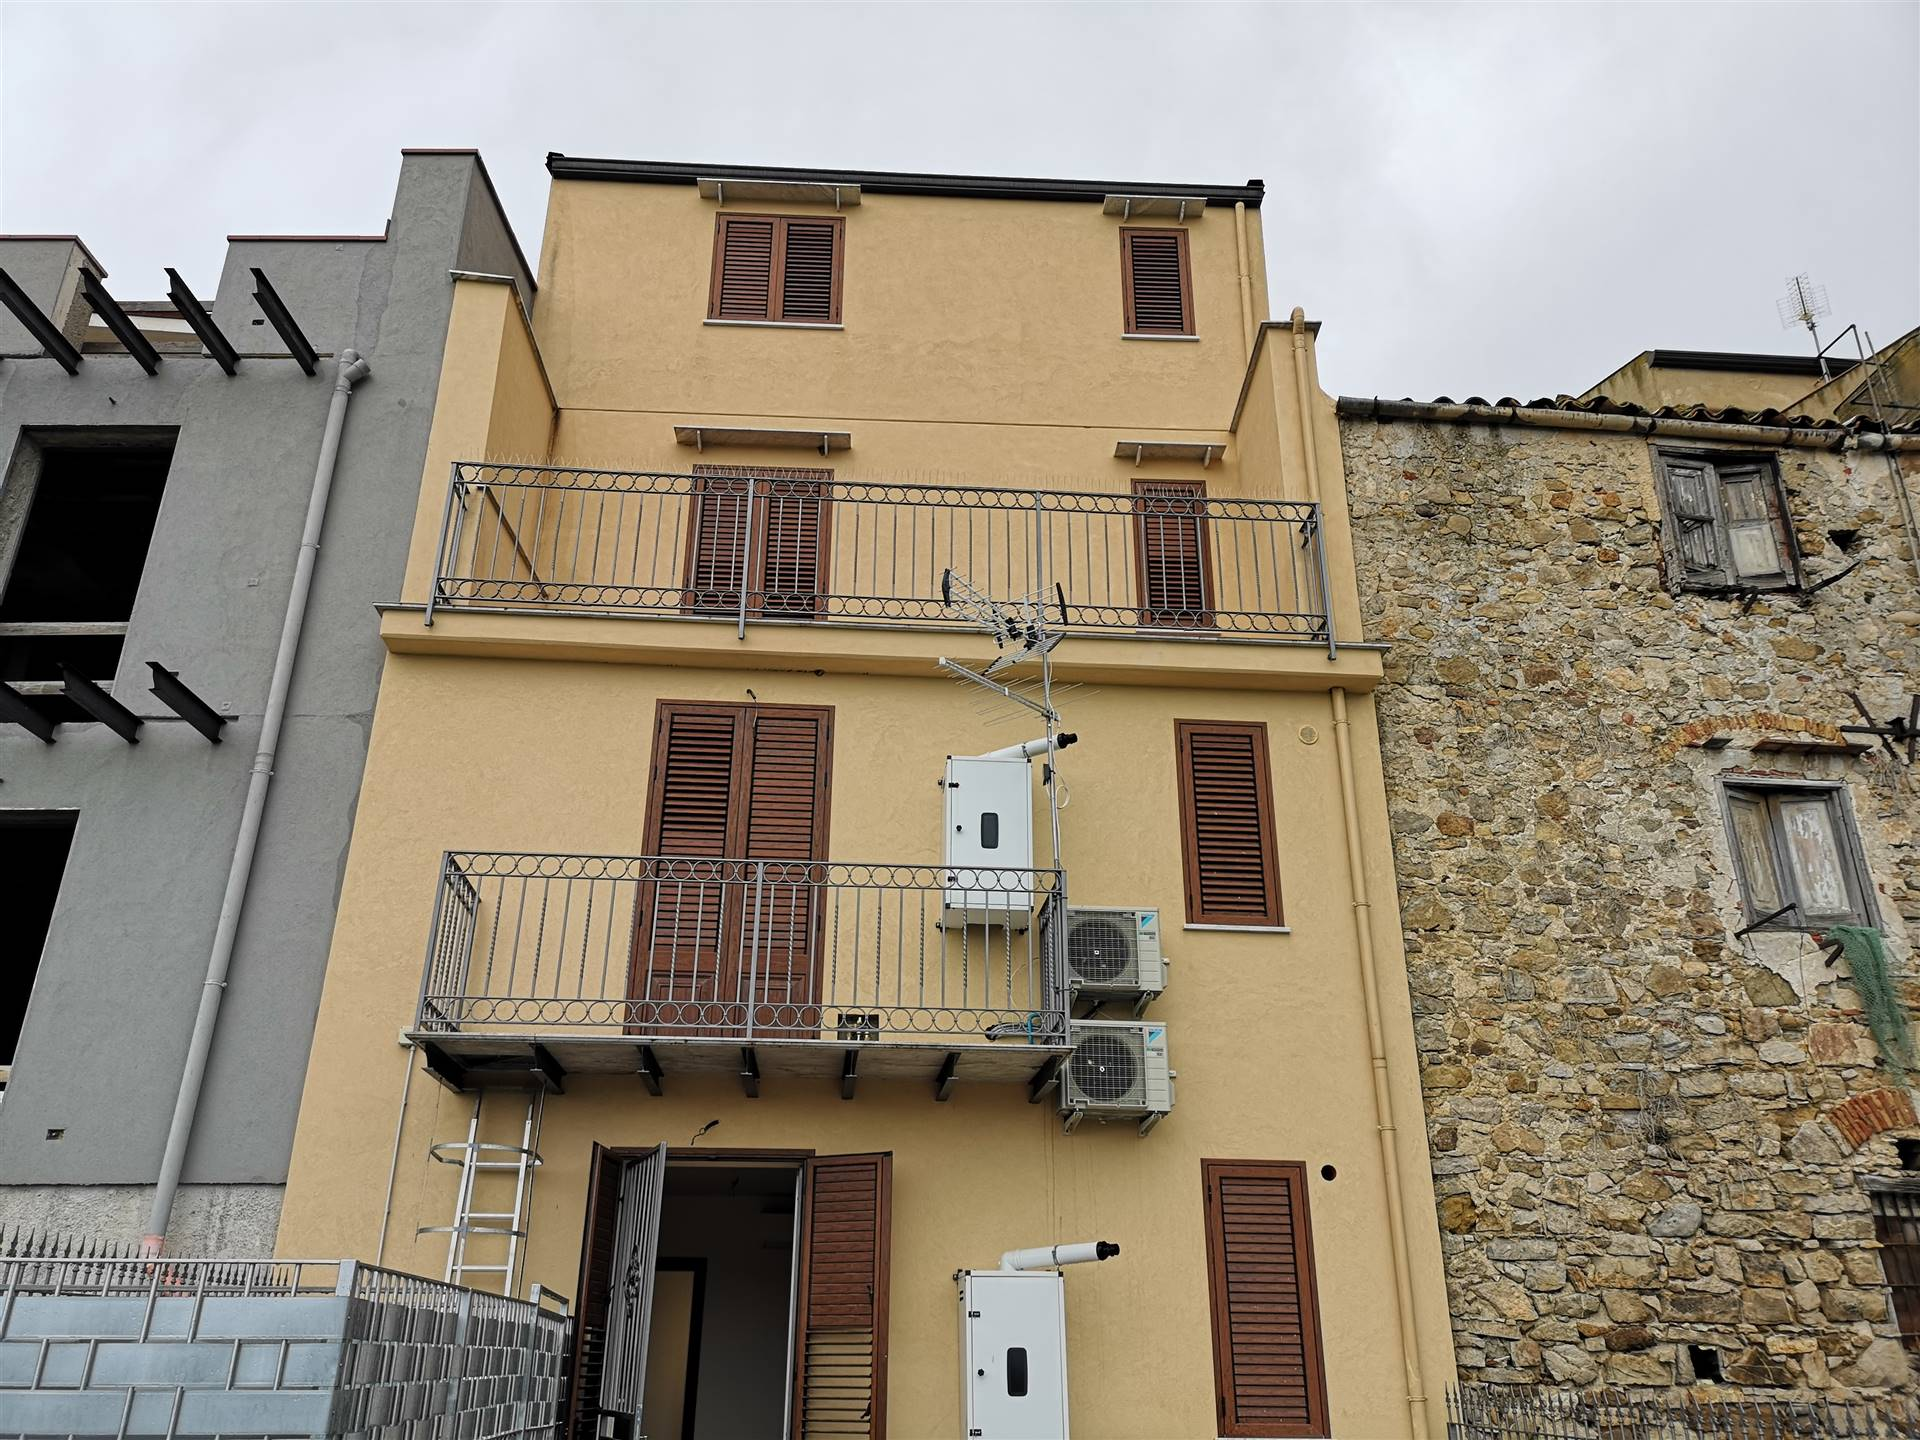 CACCAMO, Apartment for rent of 100 Sq. mt., Restored, Heating Individual heating system, Energetic class: G, Epi: 137,8 kwh/m2 year, placed at Ground,